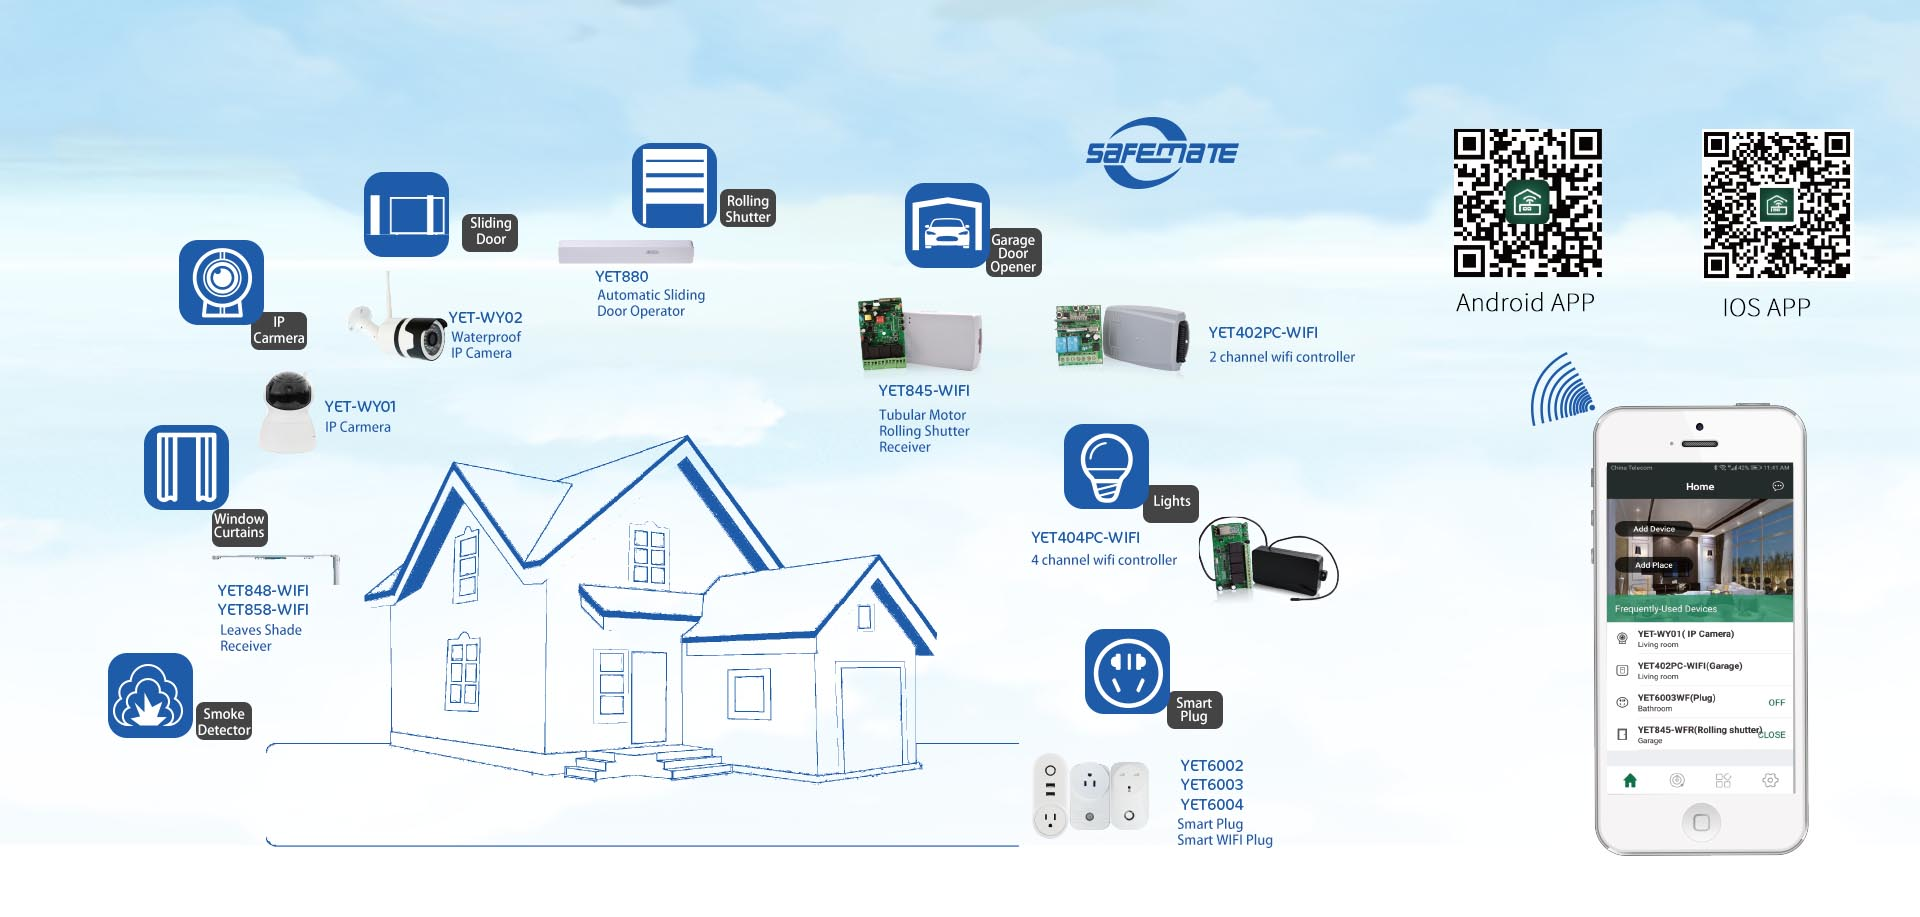 The end of the year is here, is your smart home complete?